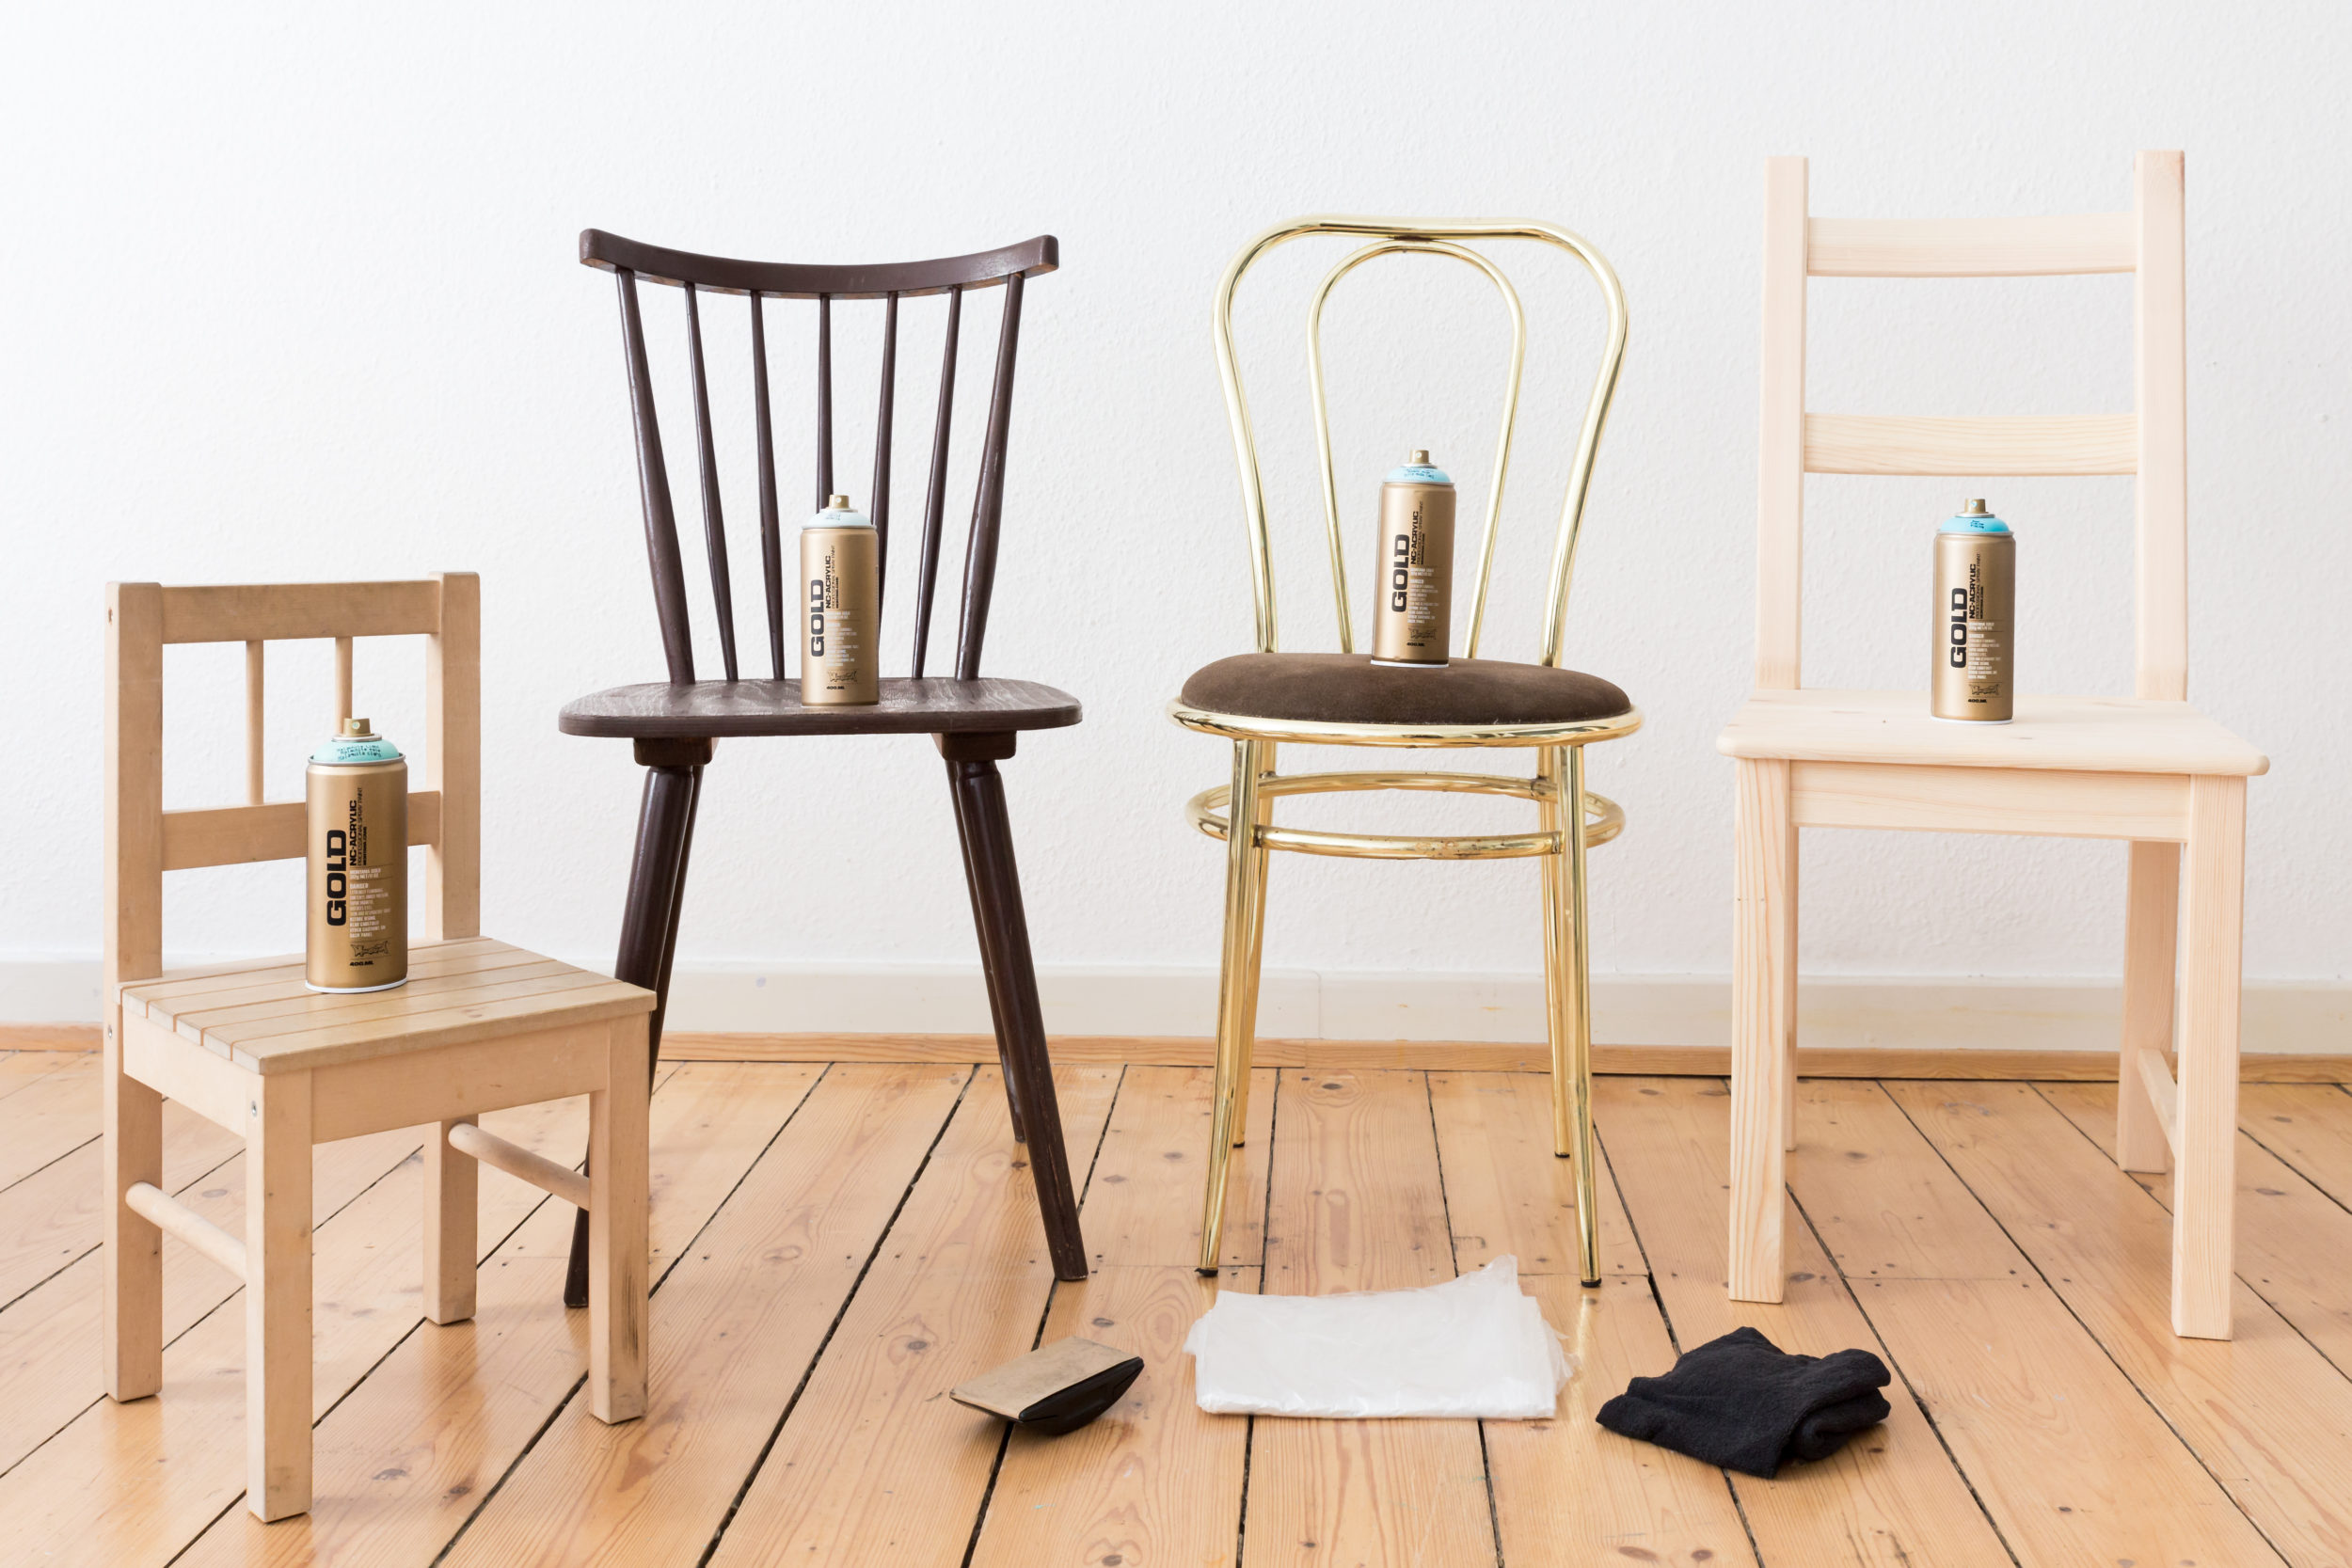 Gradient Wooden Chairs – HOW TO CREATE A BOUTIQUE OMBRÉ